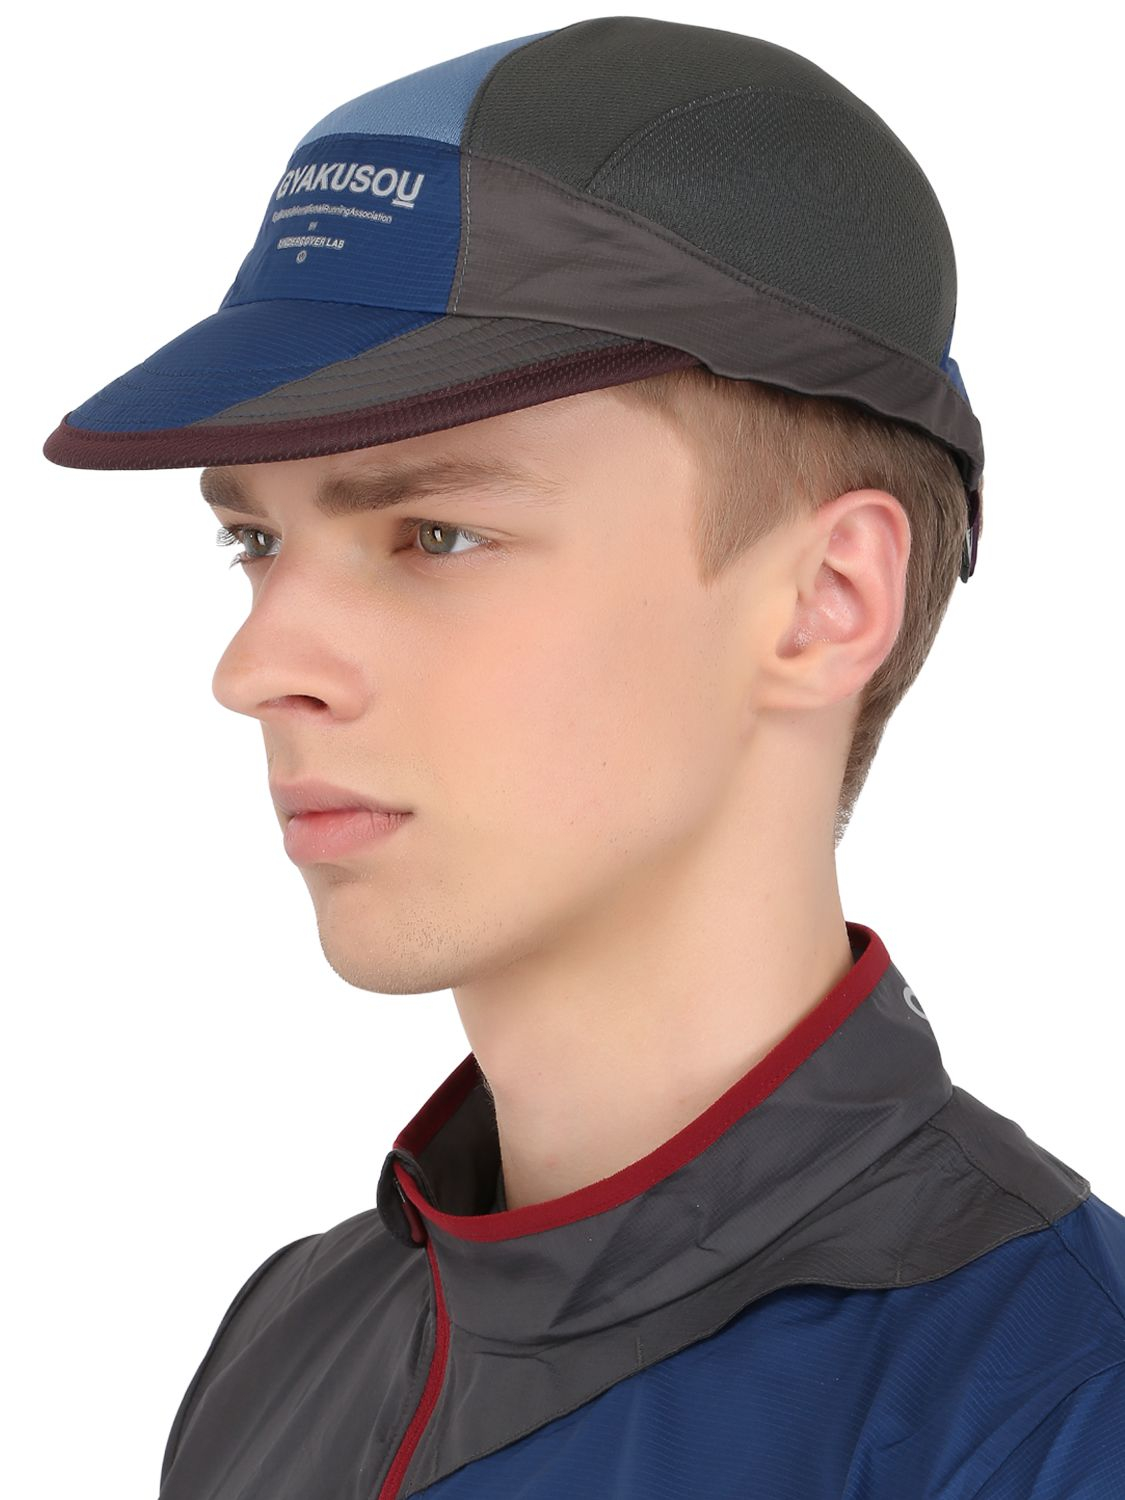 eee7689279114 france nike futura washed 86 cap 66e04 a9b28  low price nike drifit mesh  running hat in blue for men lyst 8a376 5cebc